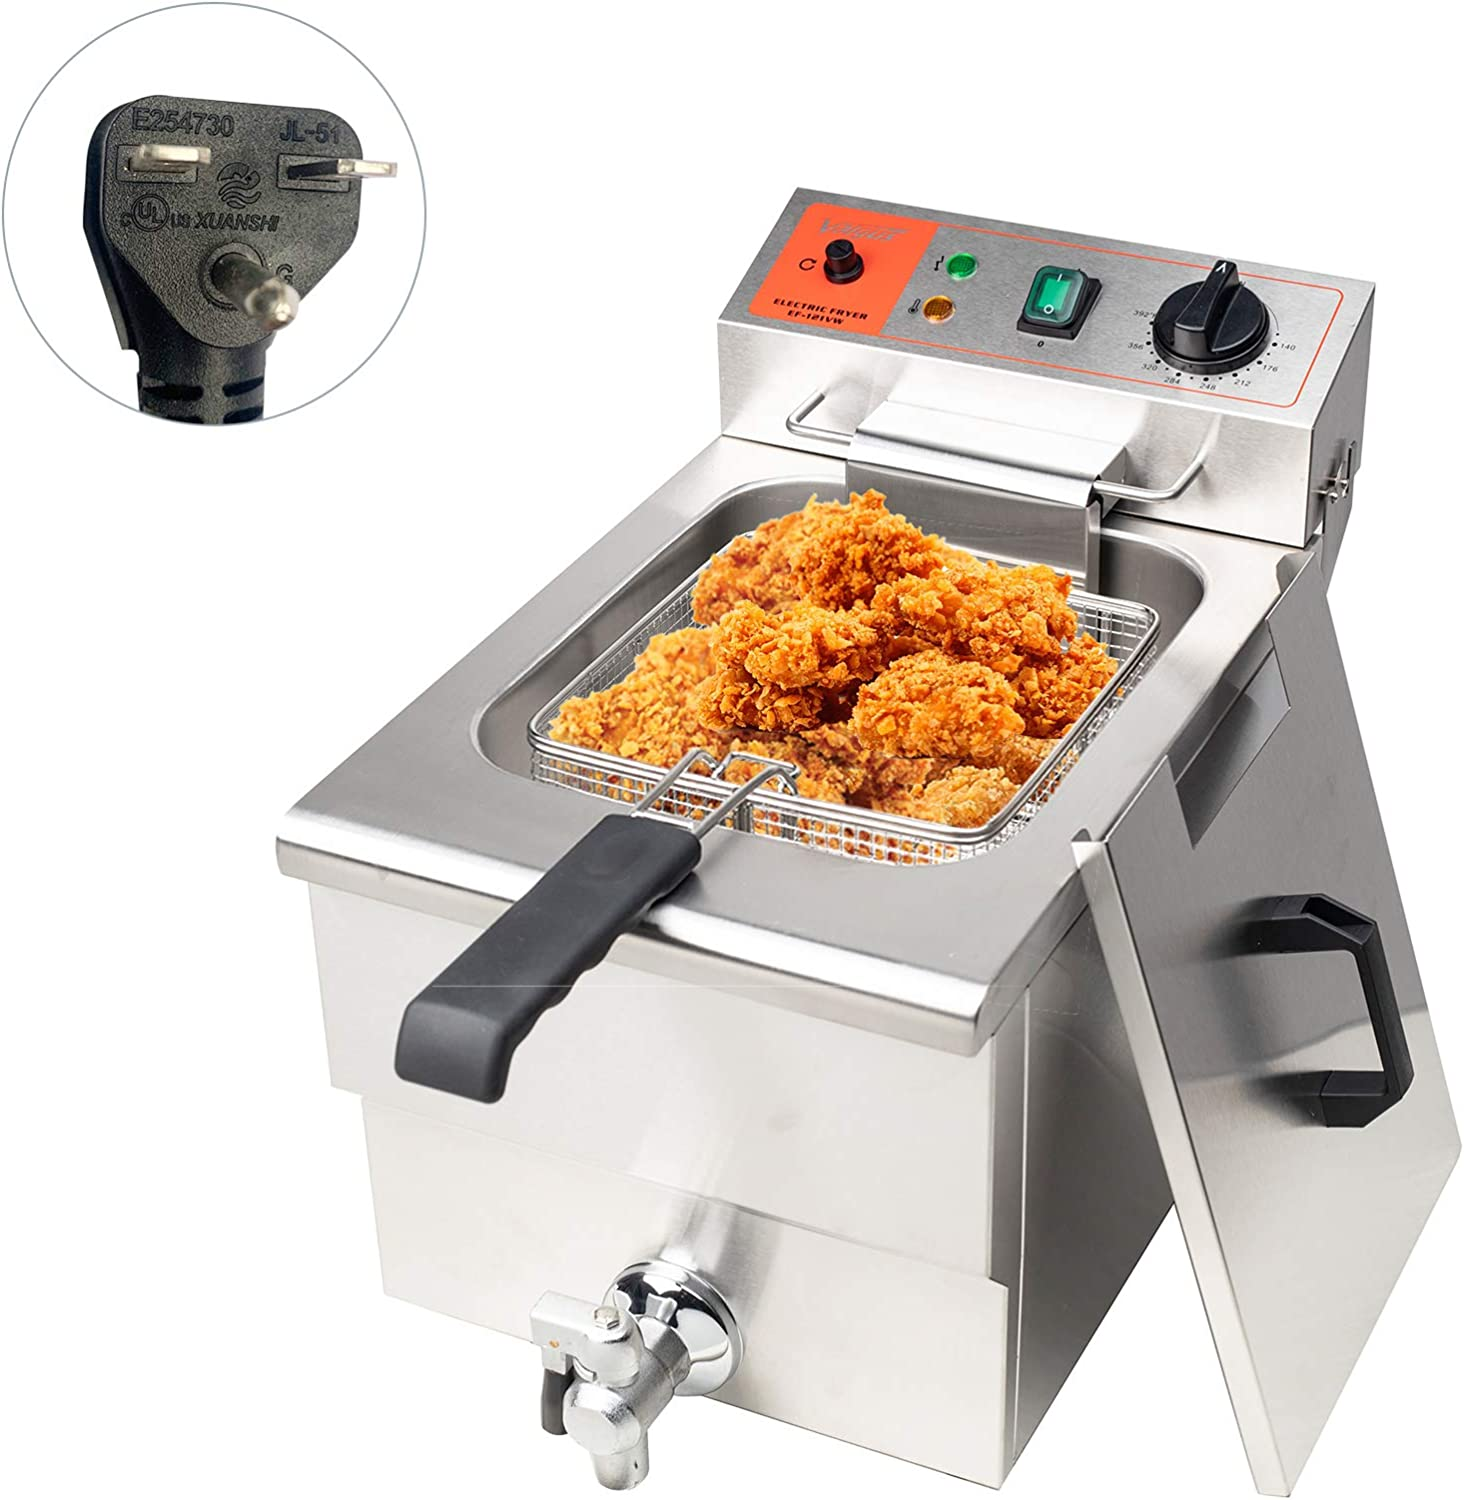 Valgus Commercial Stainless Steel Electric Deep Fryer 3000W 240V 12L Large Capacity Countertop Kitchen Frying Machine with Basket & Lid, Drain System for Restaurant and Home